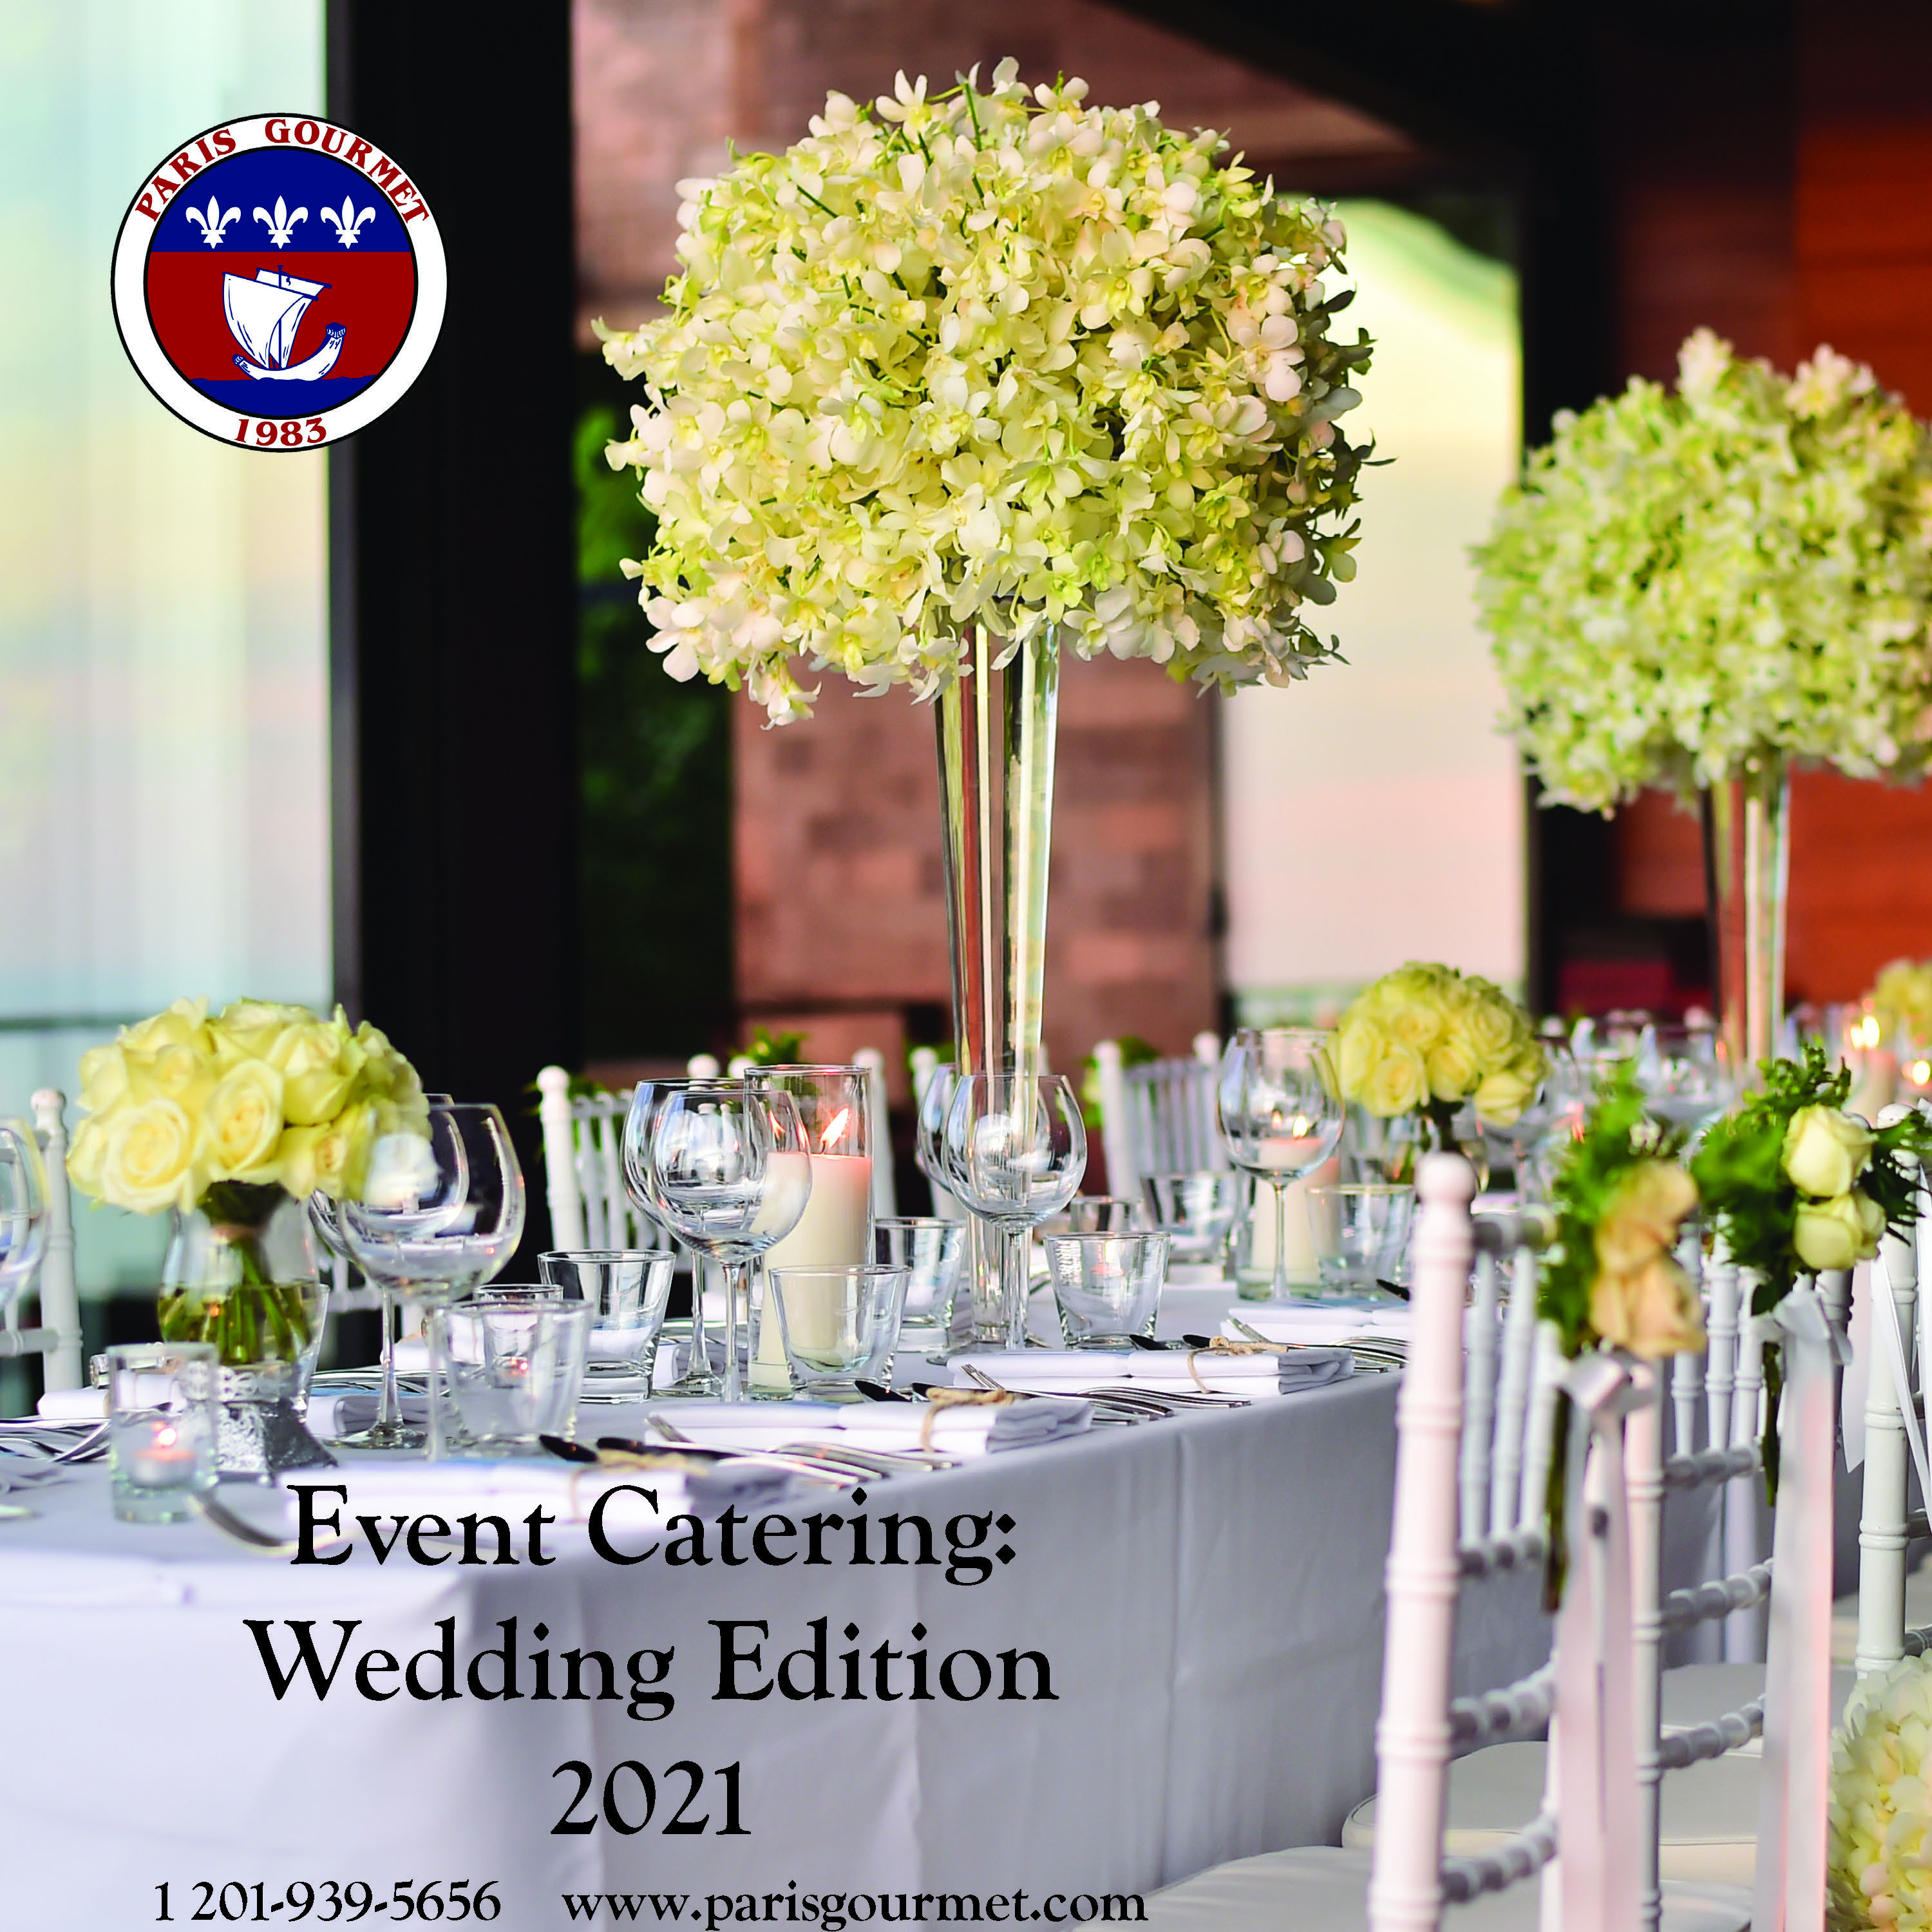 Event Catering pg 1-1